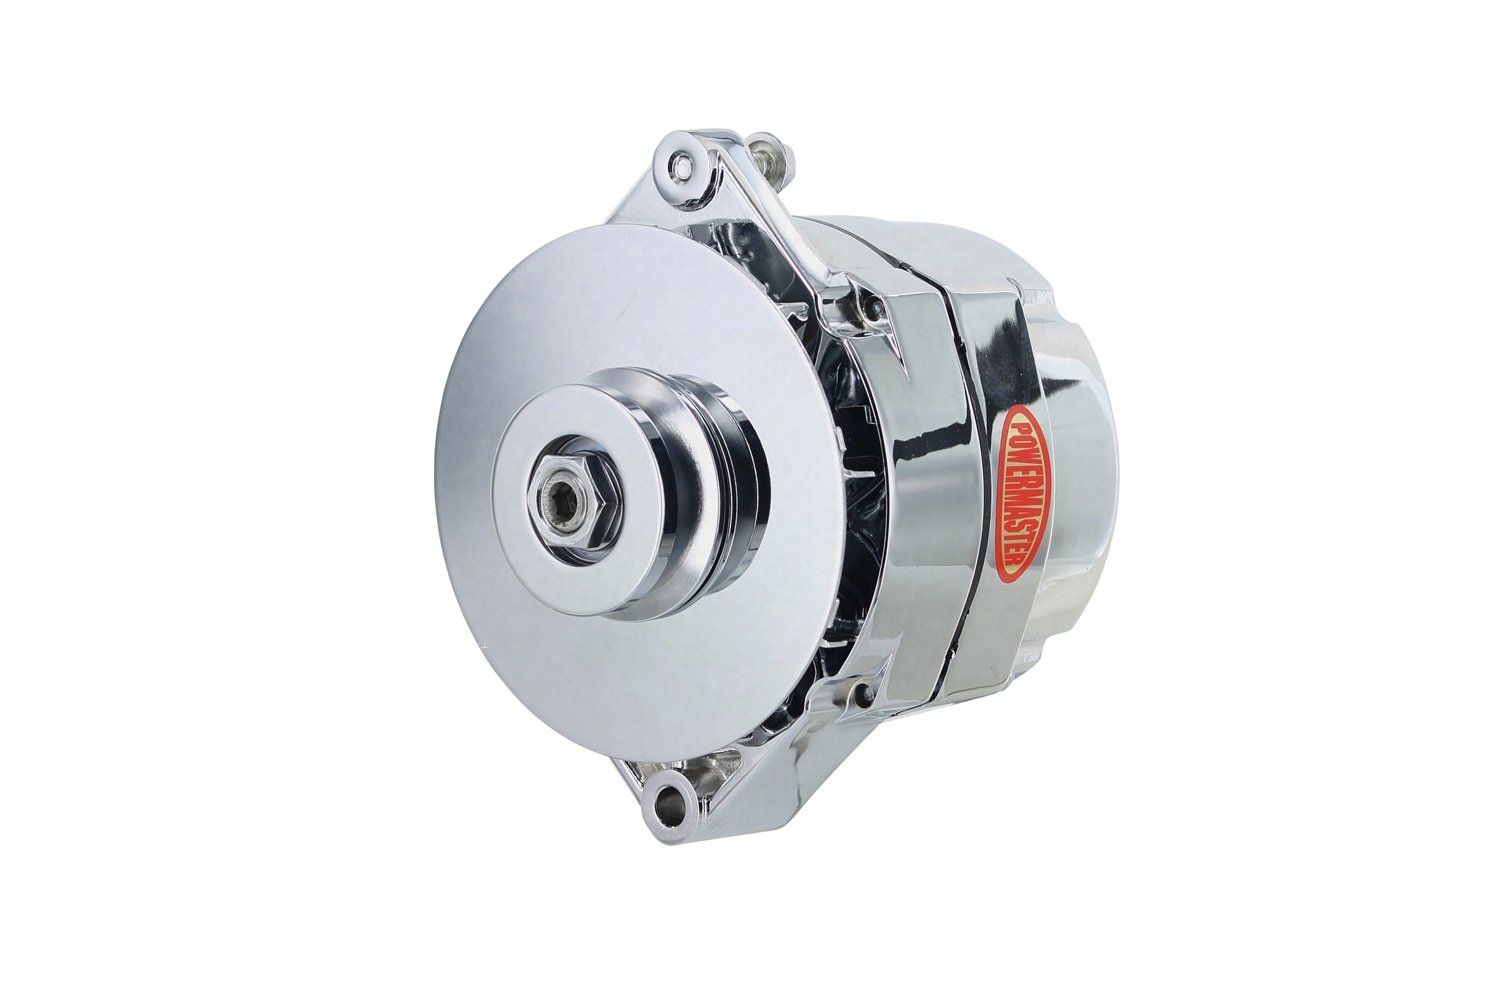 Powermaster Performance 17294-344 Chrome Alternator 12SI 100A 1V Pulley /& Baffle 1 or 3 Wire